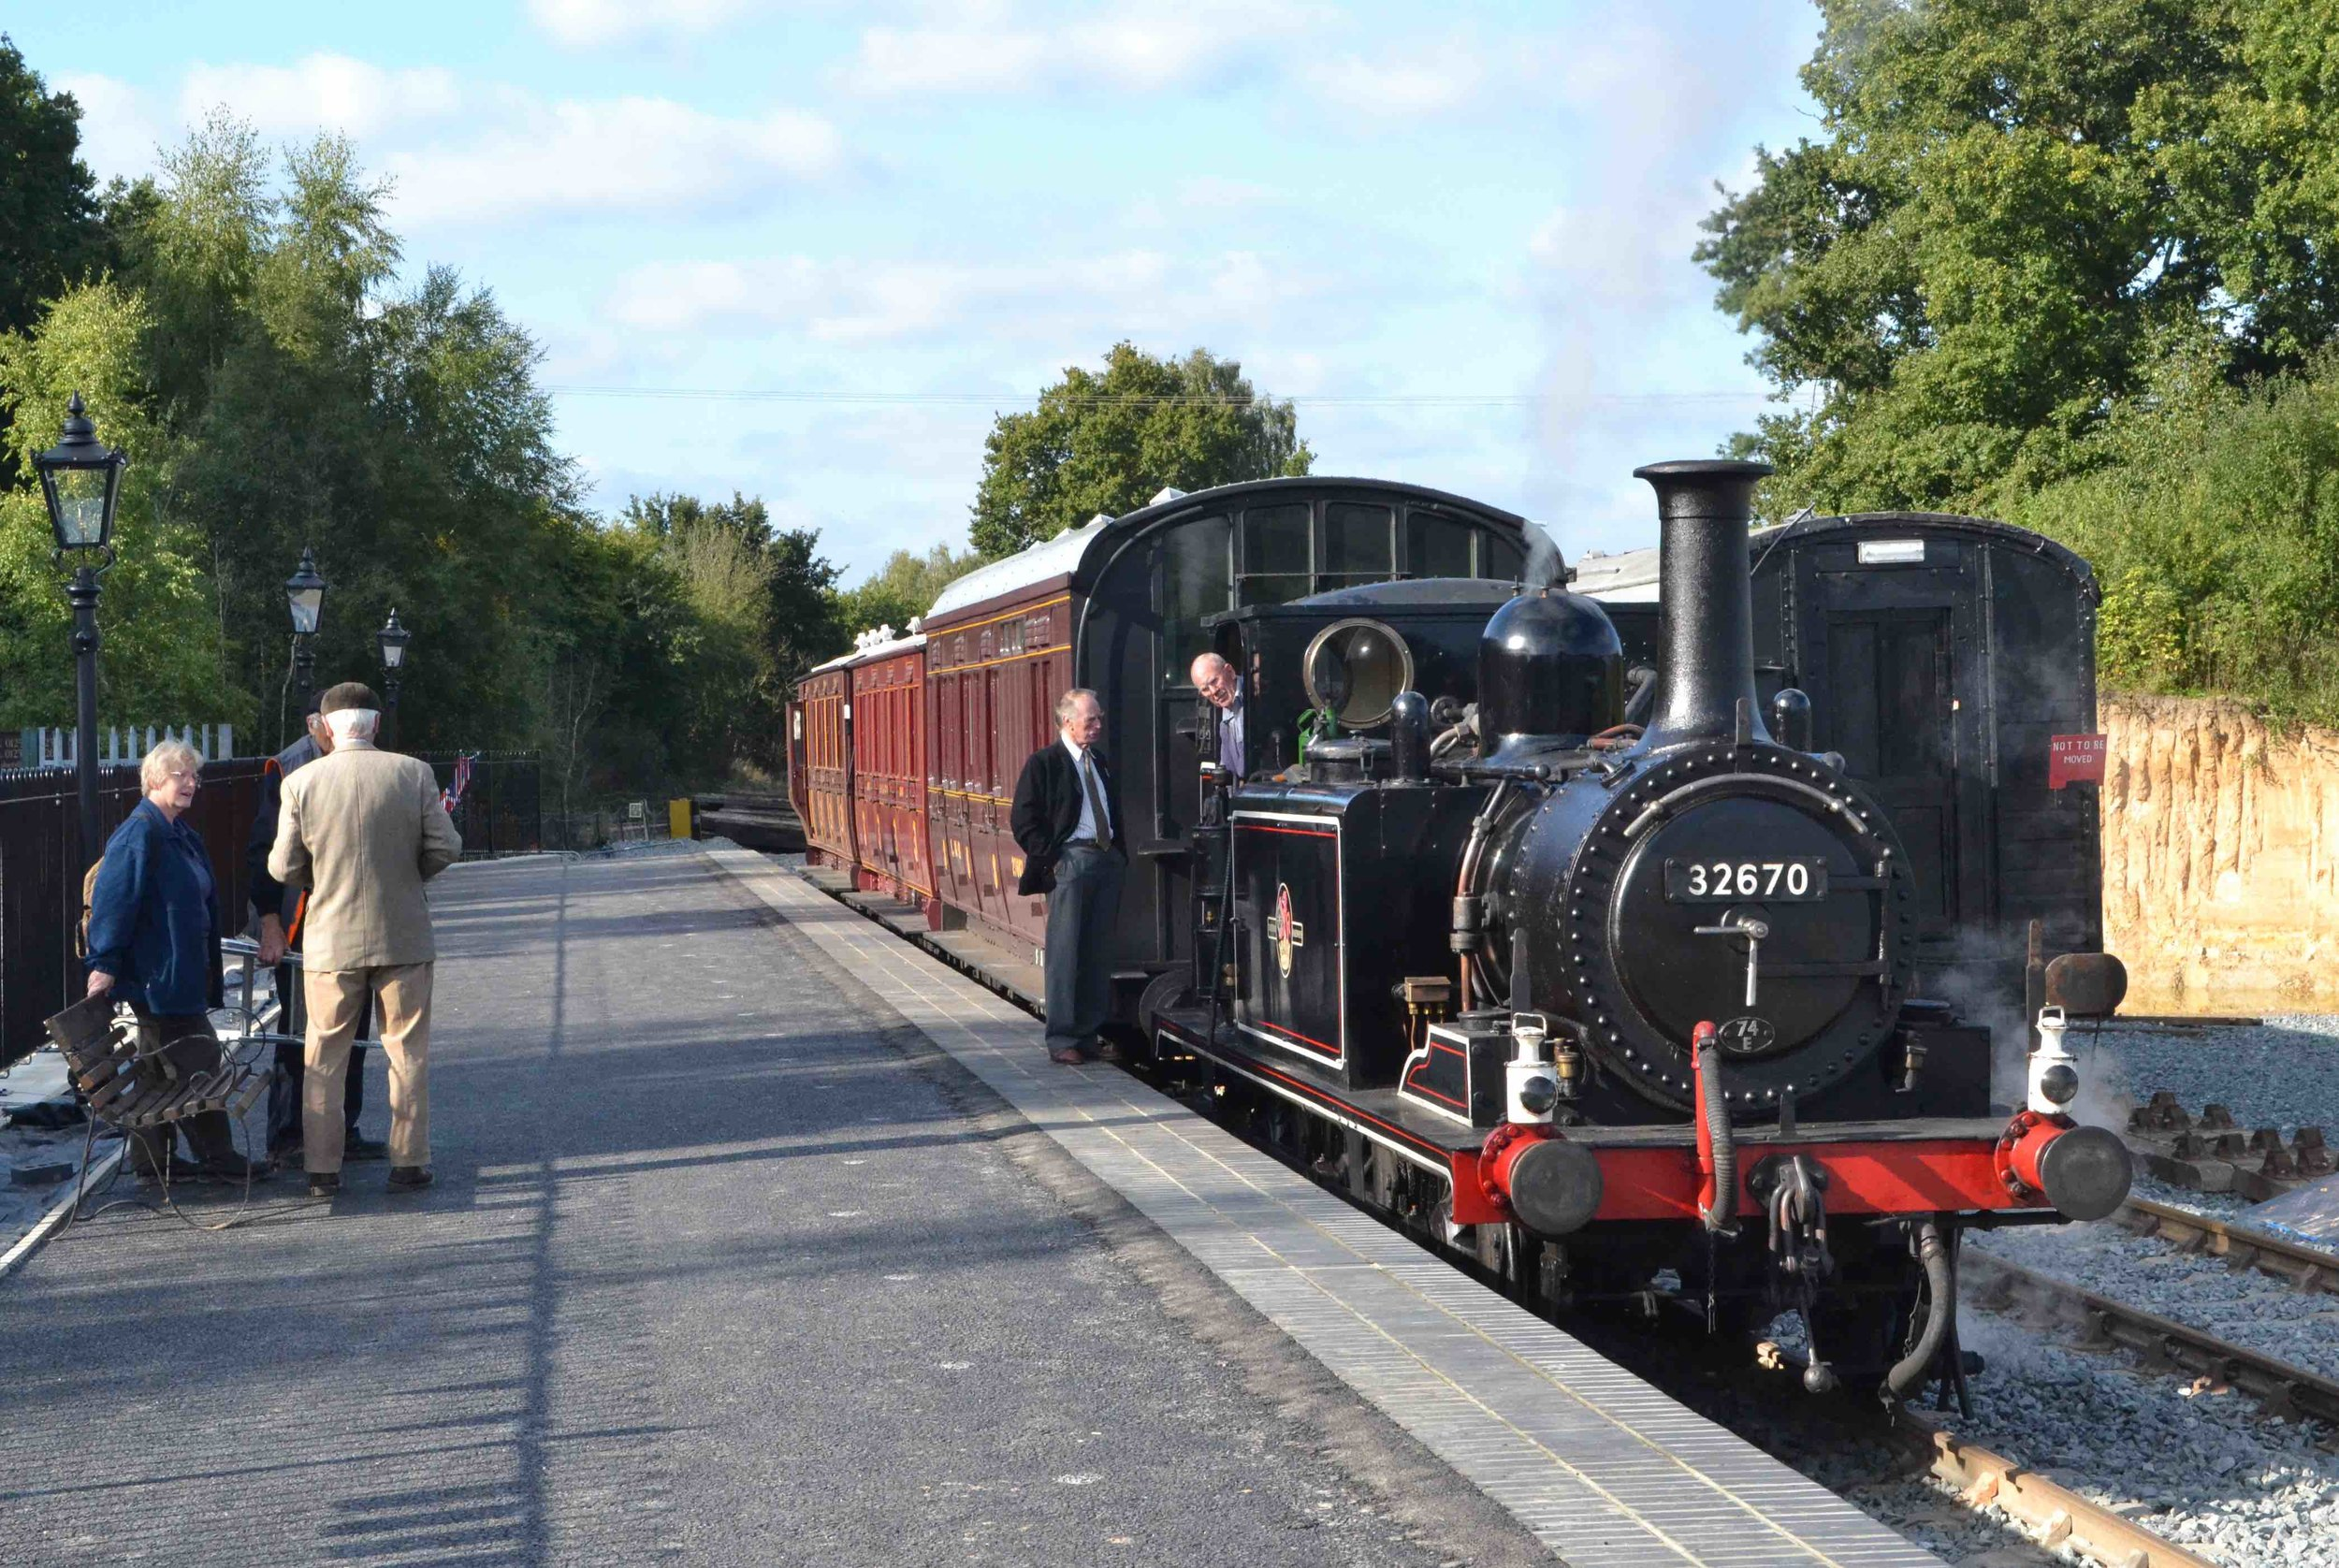 Visiting from the Kent & East Sussex Railway, 'Terrier' 0-6-0T No. 32670 completes the scene at the Rother Valley Railway's new Robertsbridge Junction station on September 20 2013. TOBY JENNINGS